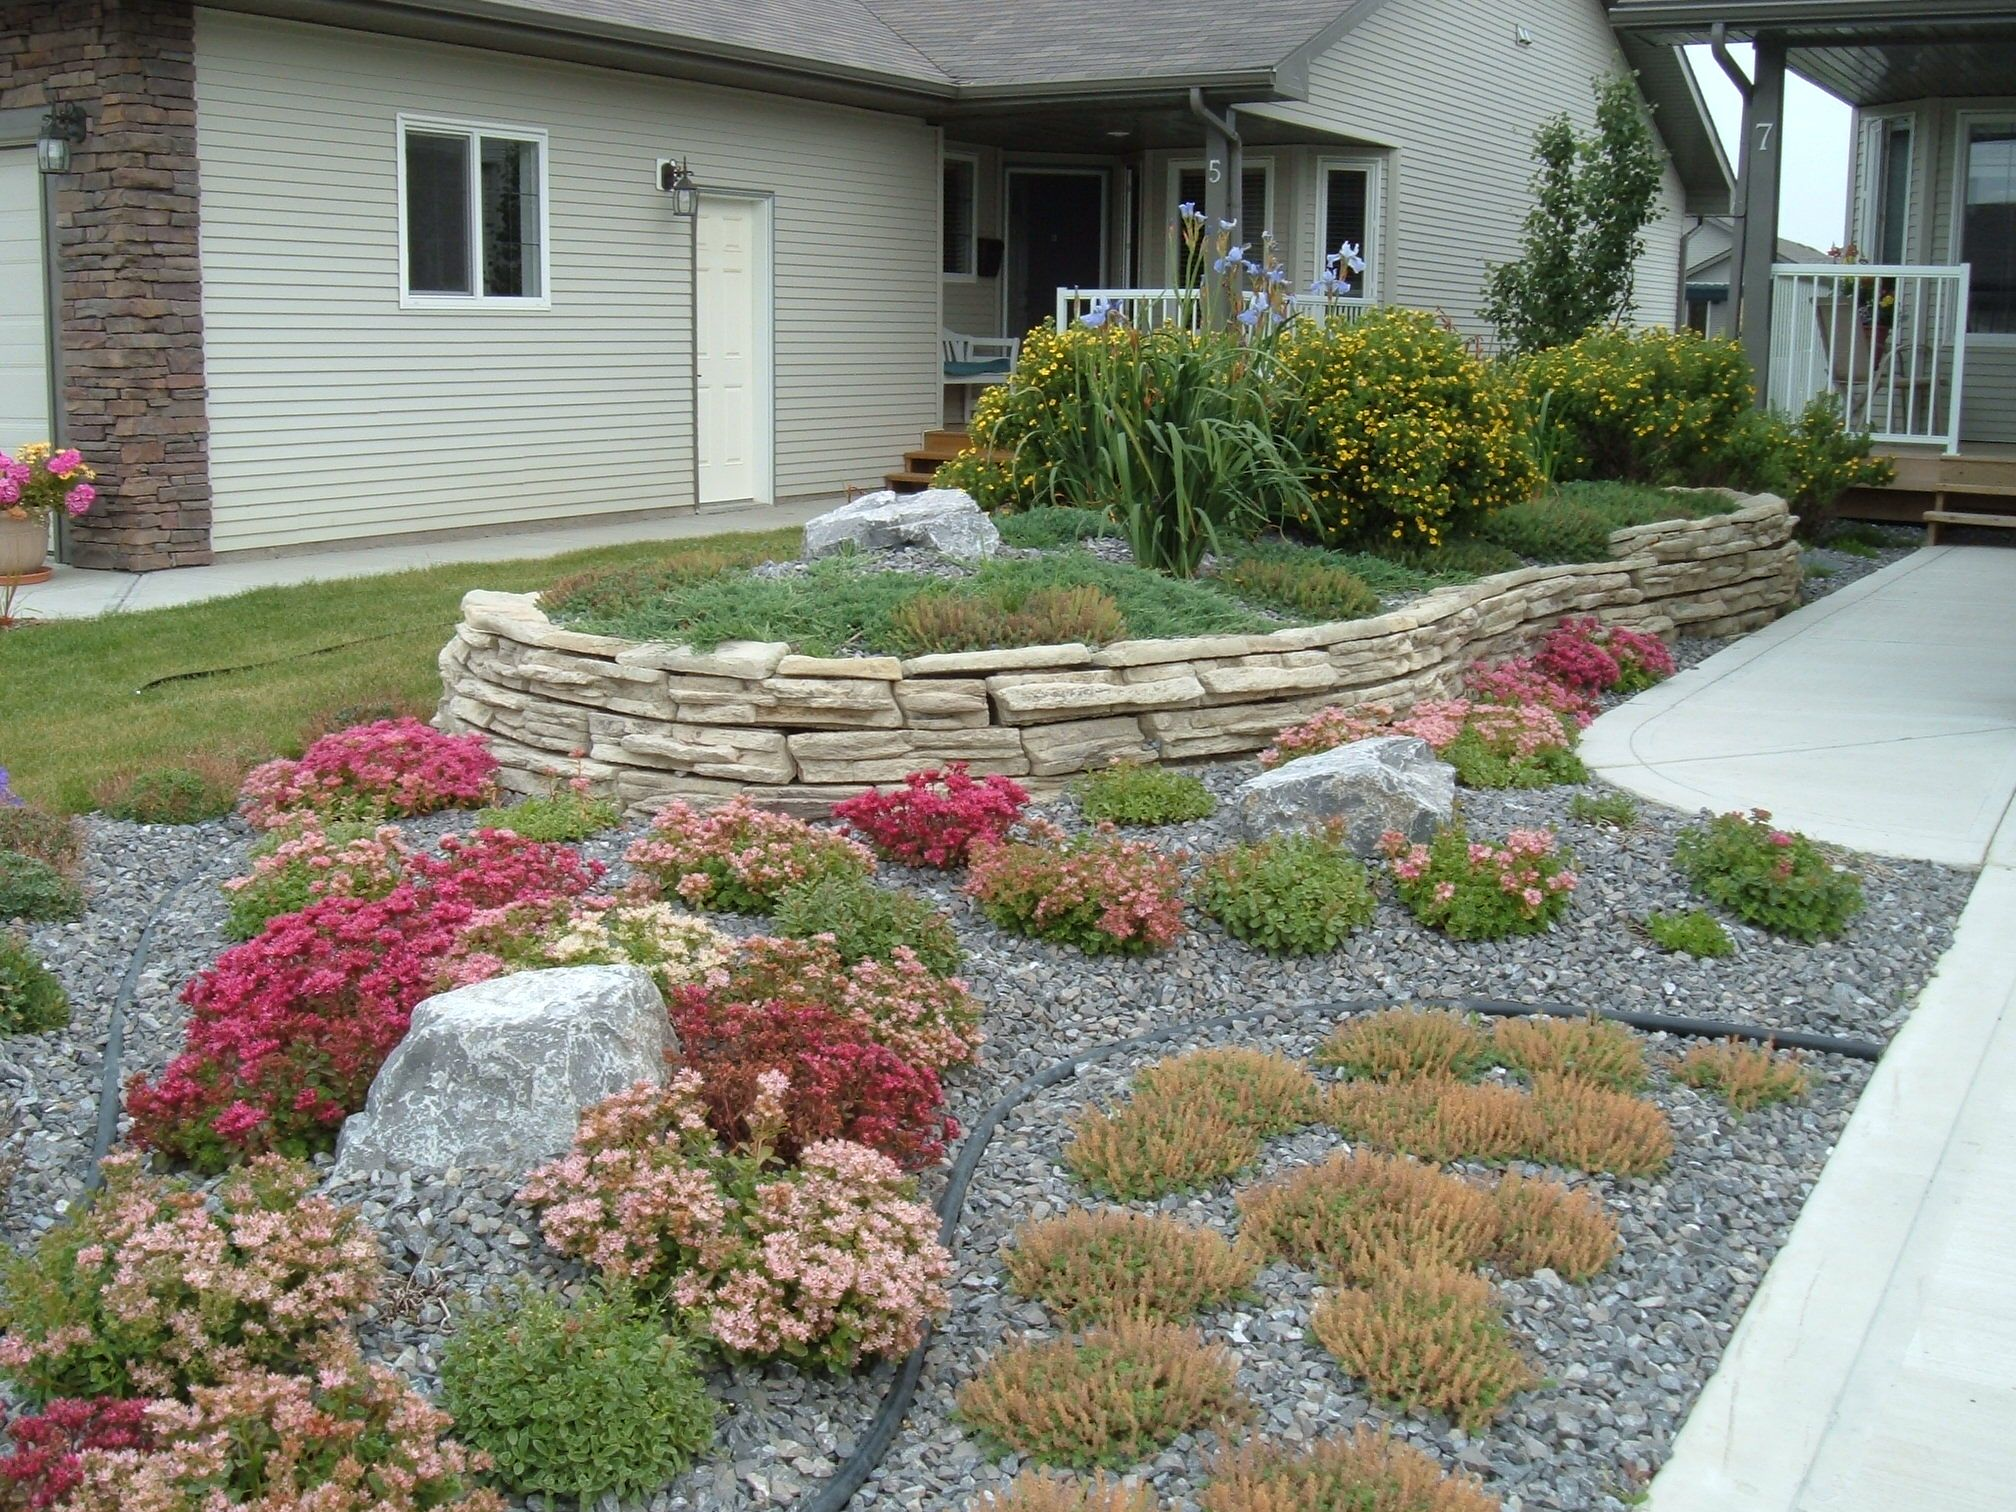 Minimal maintenance landscaping a no lawn front yard with for No maintenance outdoor plants